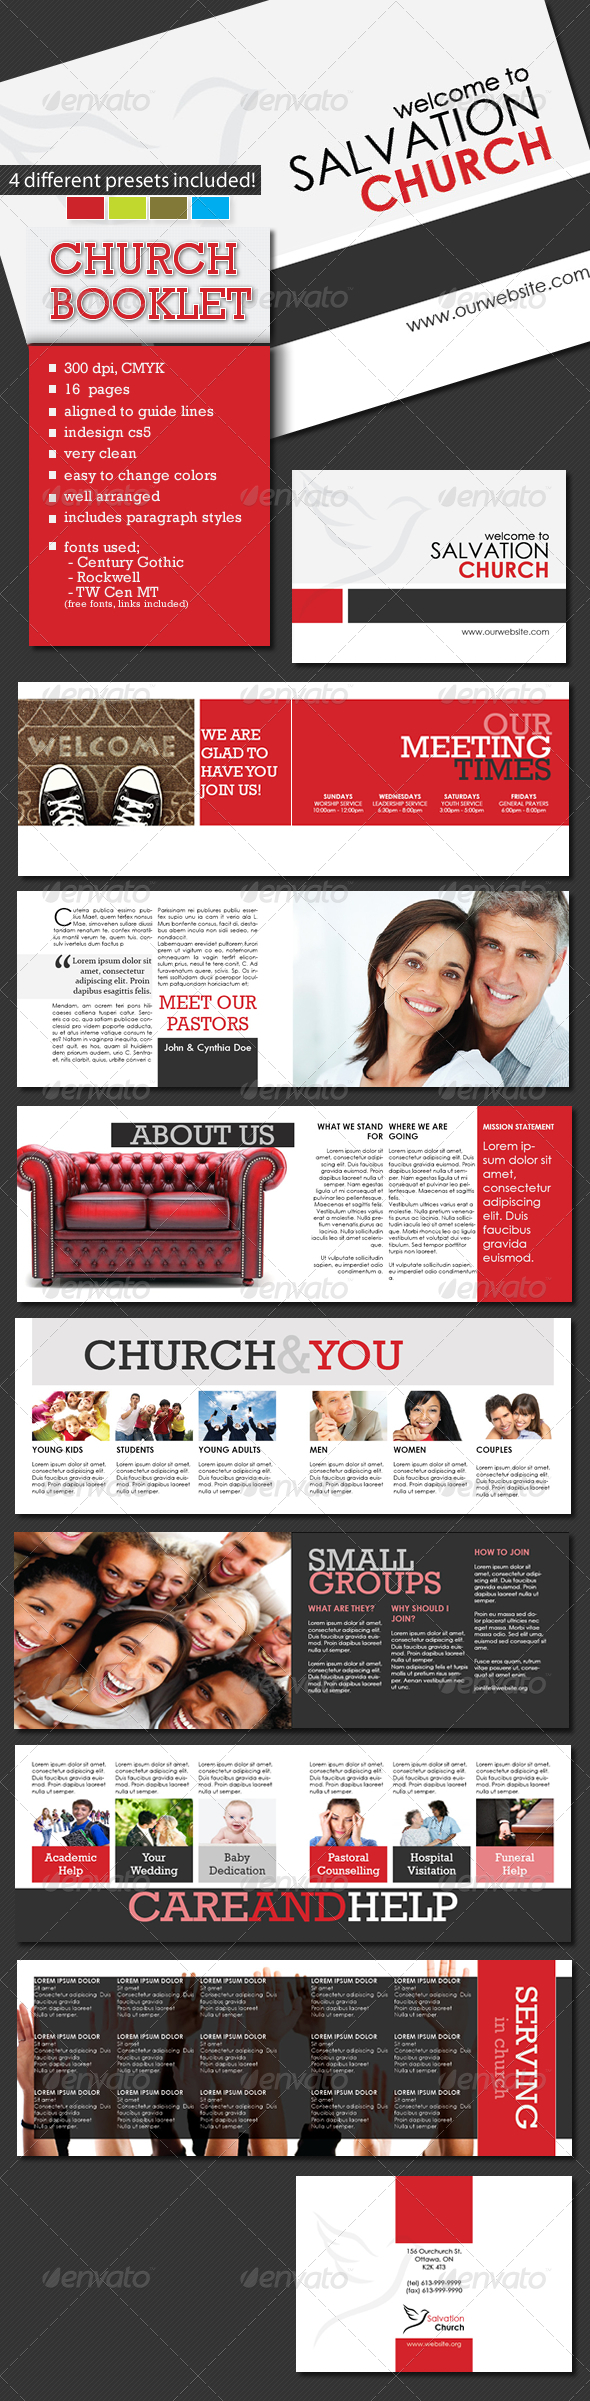 GraphicRiver A5 Church Booklet Template 16 Pages 4530029